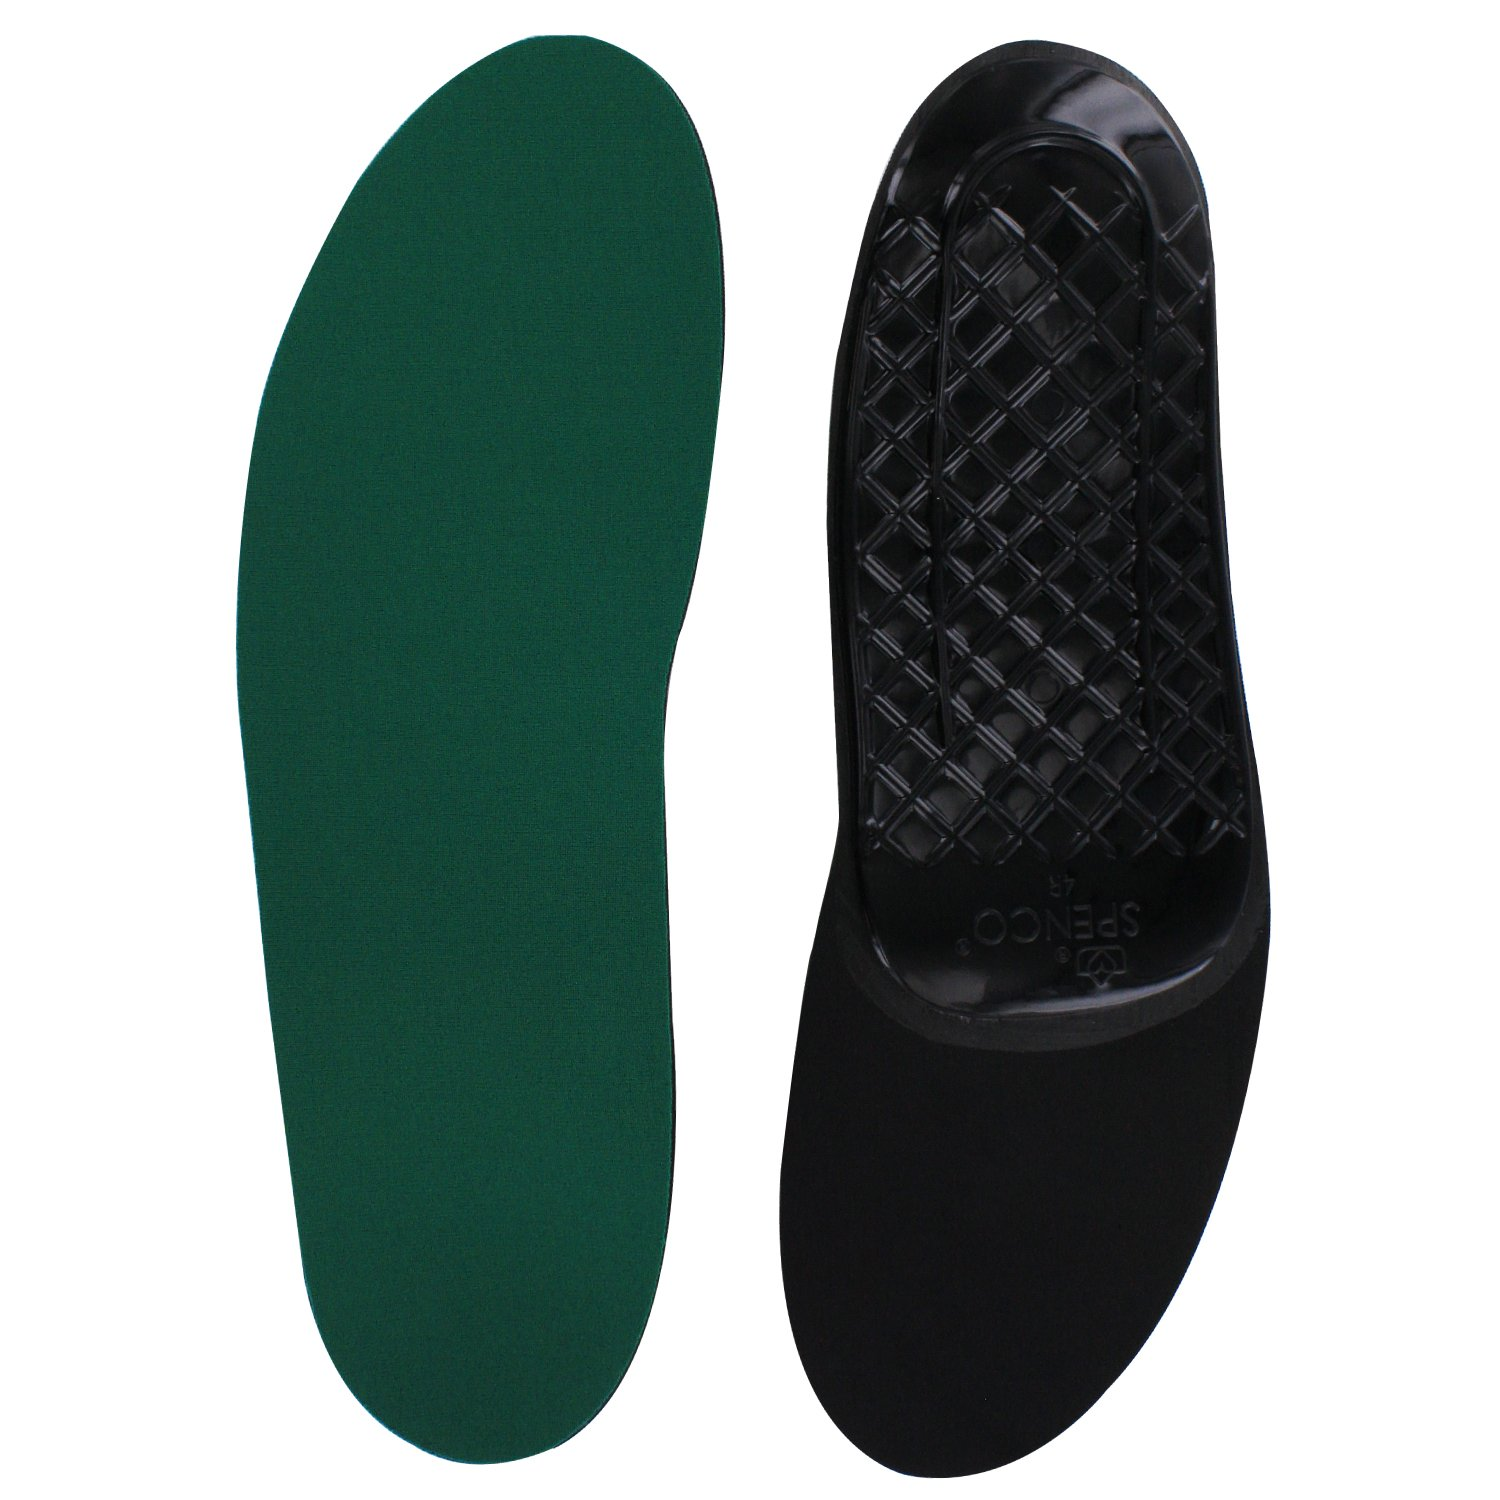 Spenco Rx Orthotic Arch Support Full Length Shoe Insoles, Women's 7-8.5/Men's 6-7.5 by Spenco